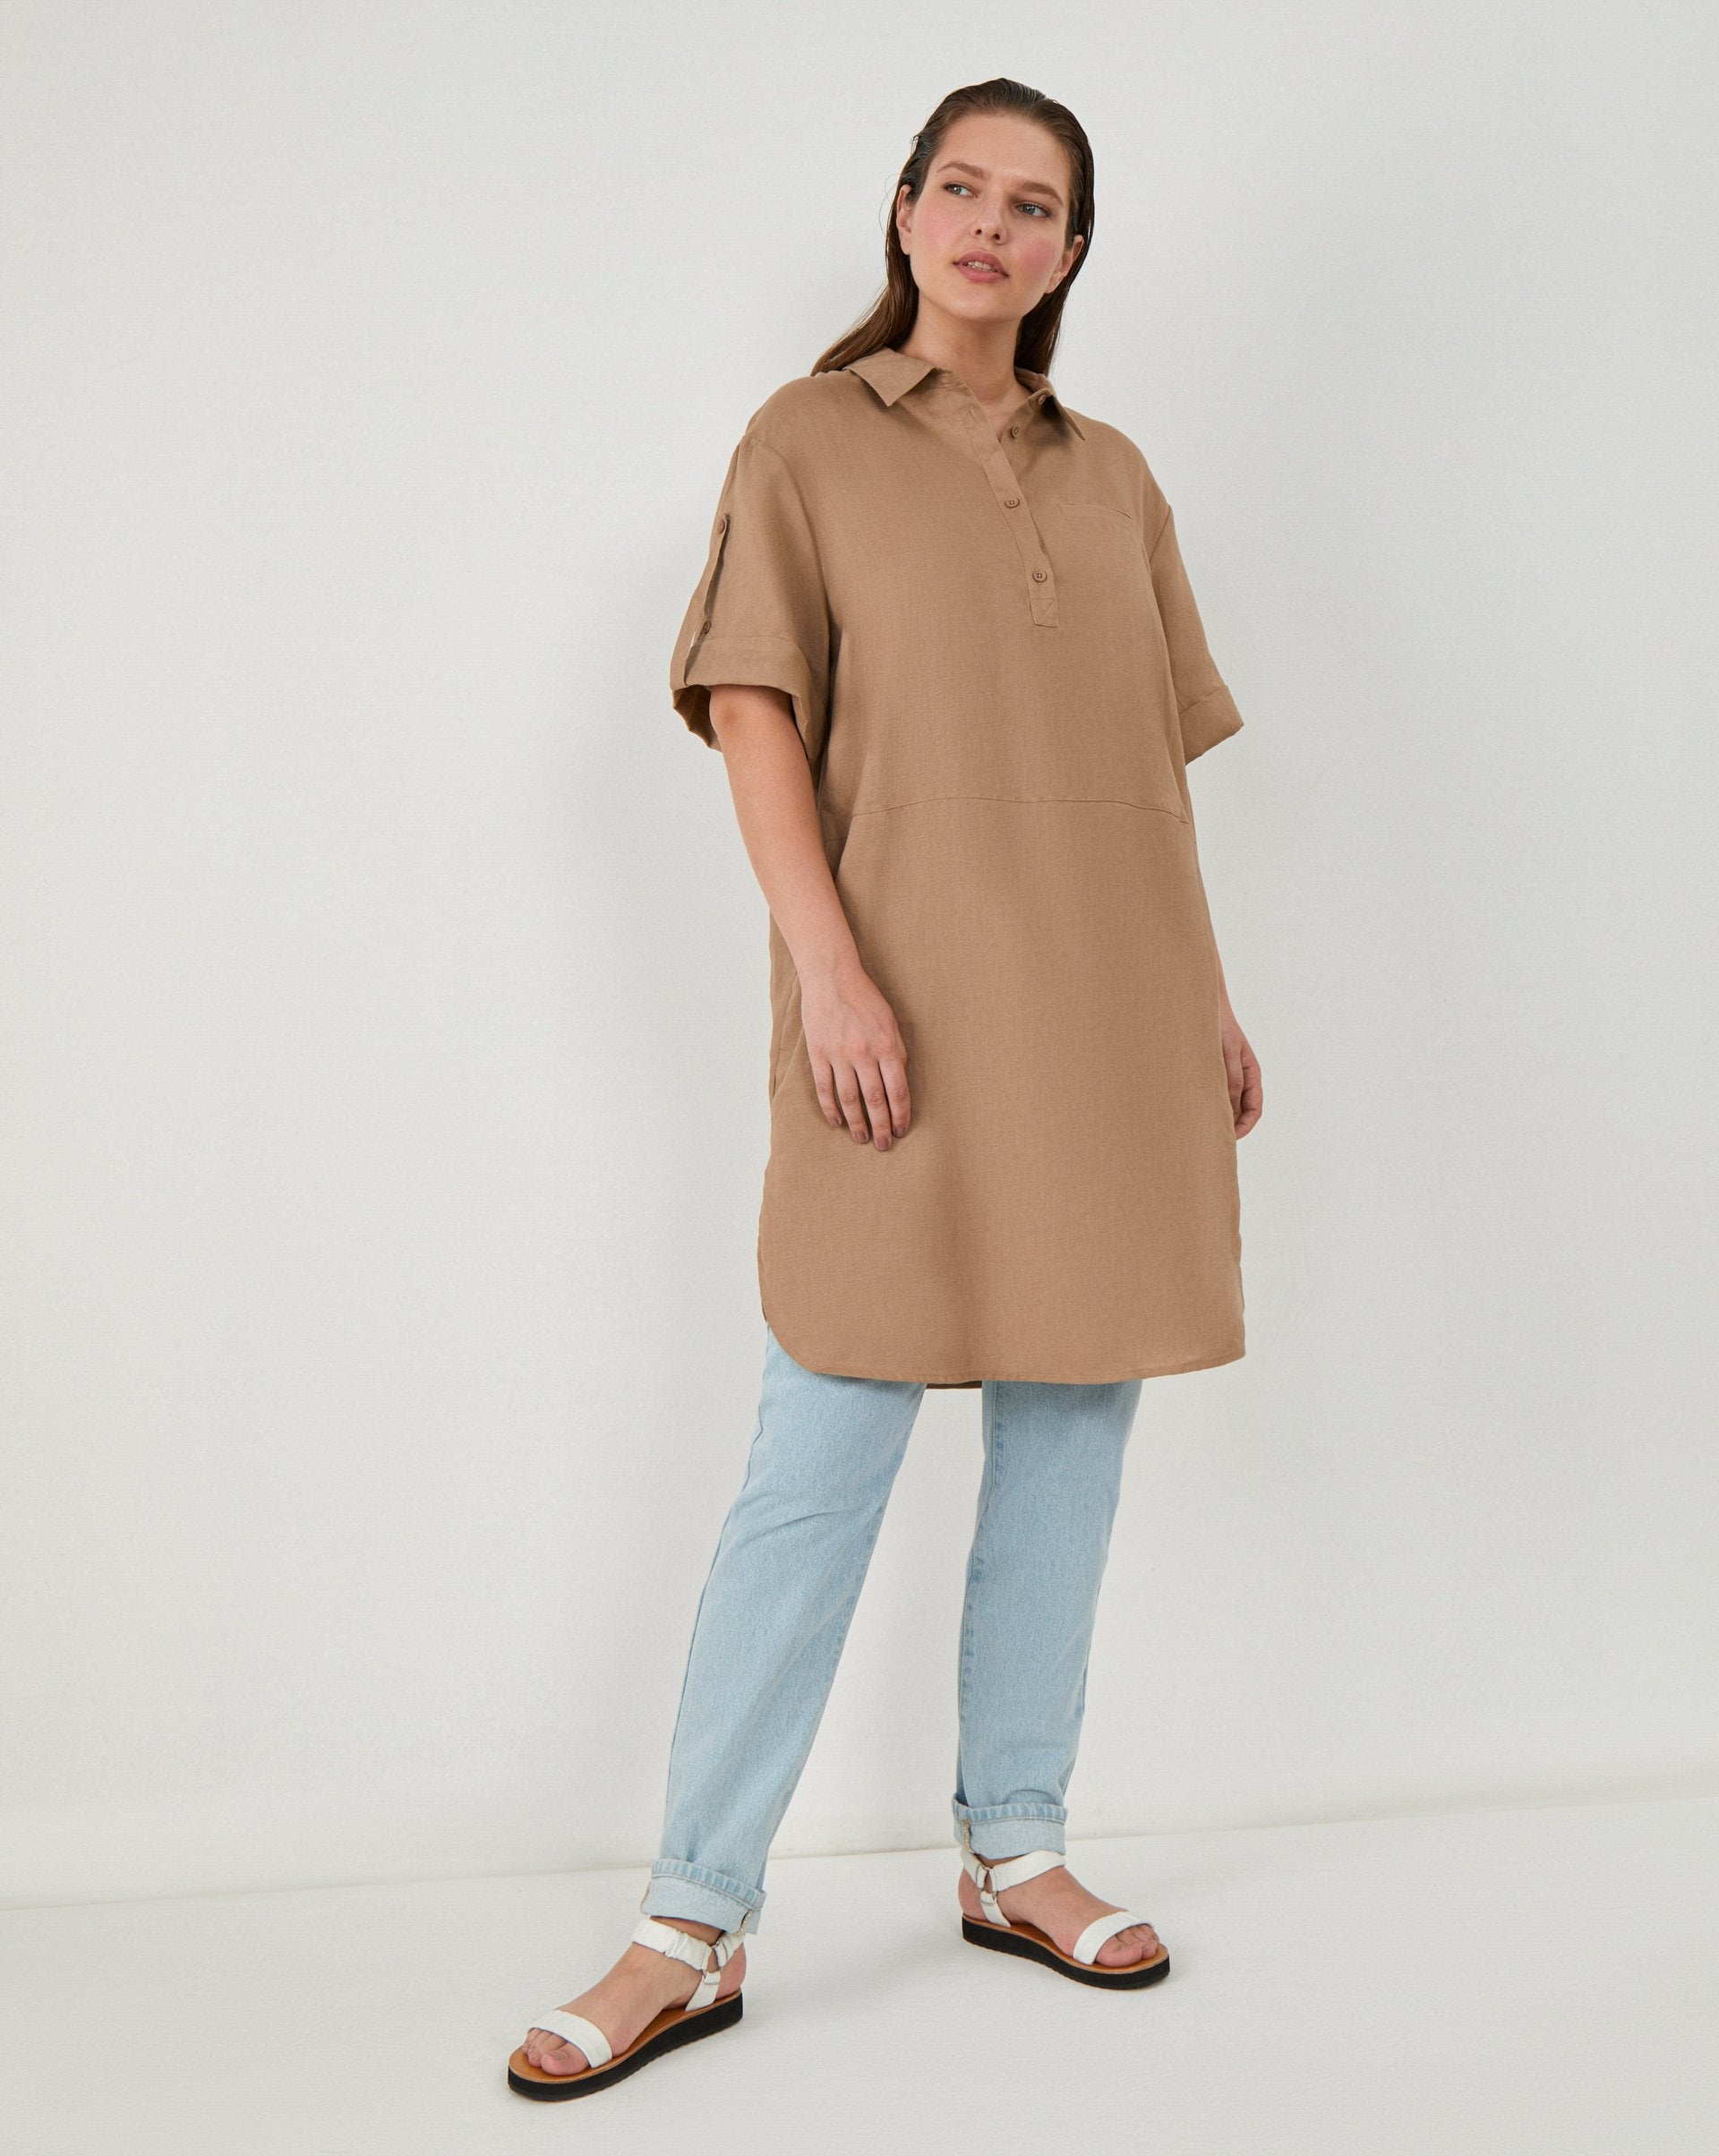 T-shirt dress - 12 STOREEZ